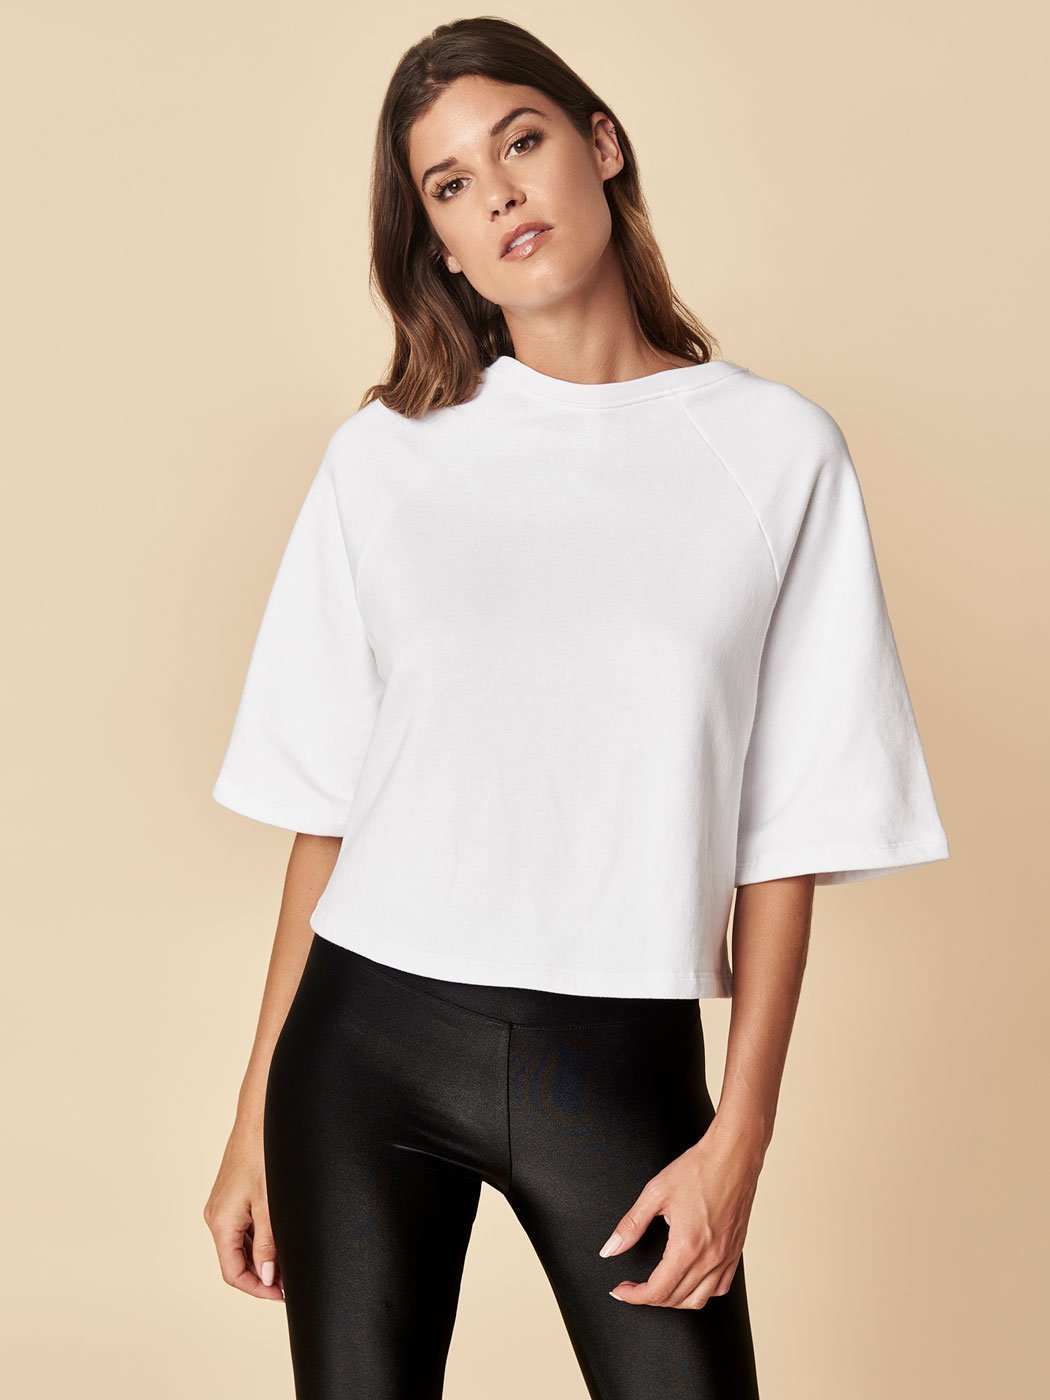 Off Duty Boxy Sweatshirt, Final Sale